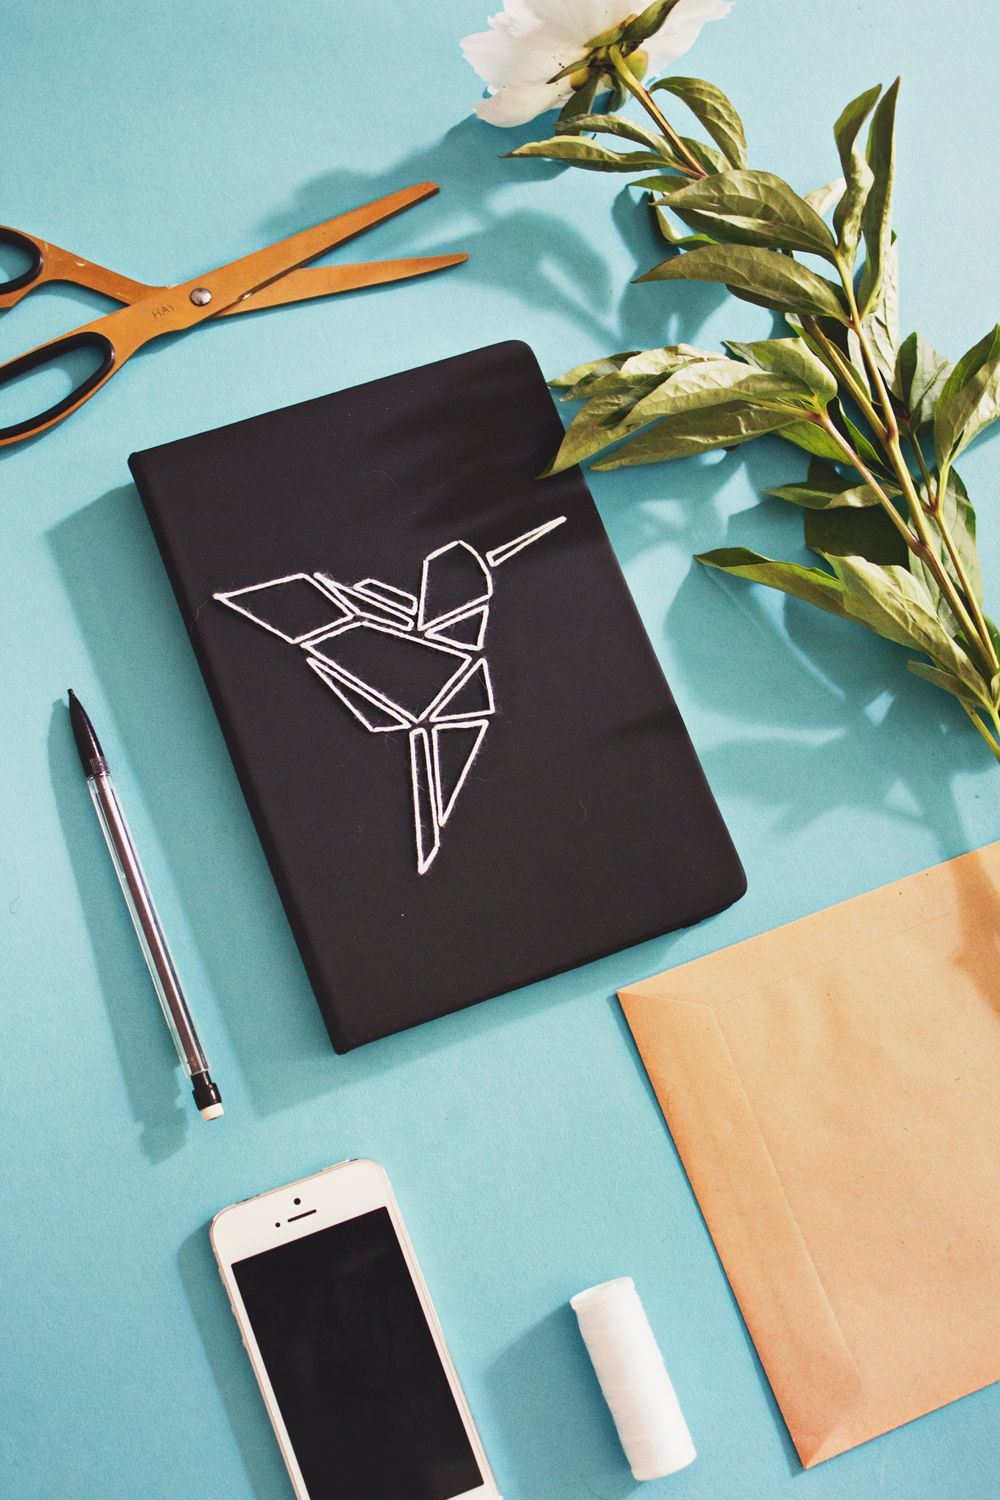 Diy Fashion Book Cover : Diy origami book covers and